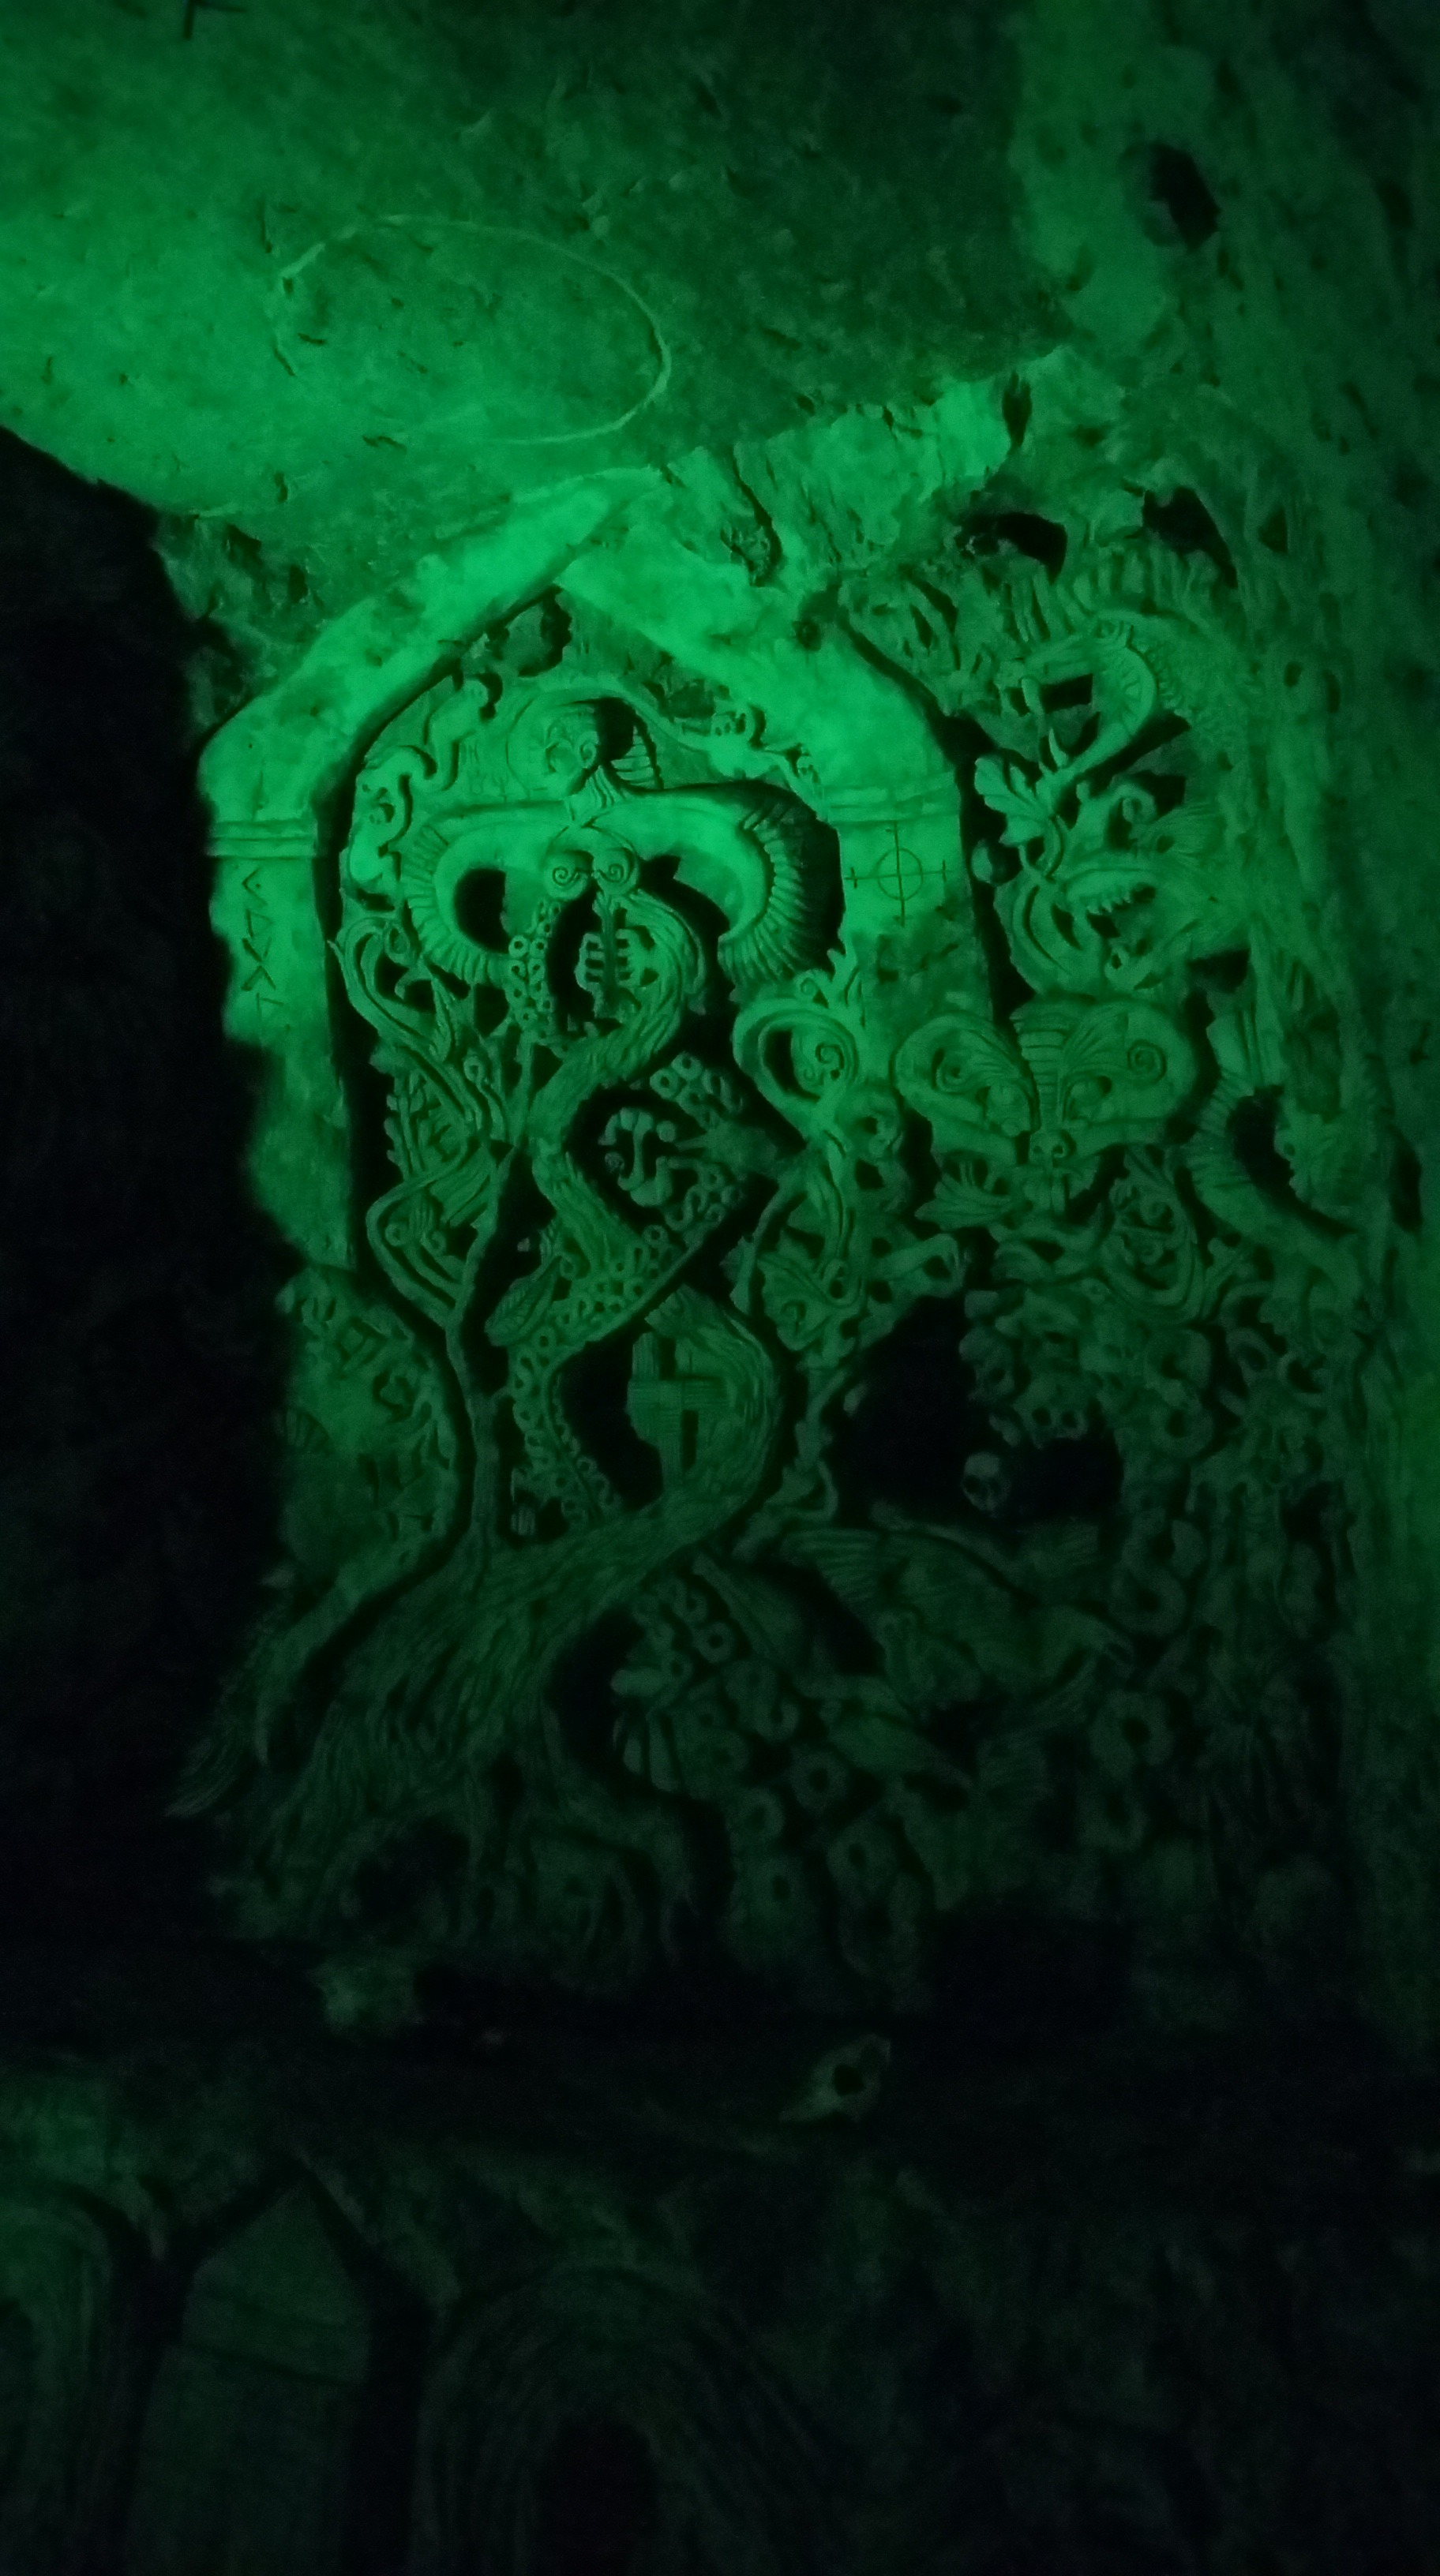 Modern sculpture in the caves